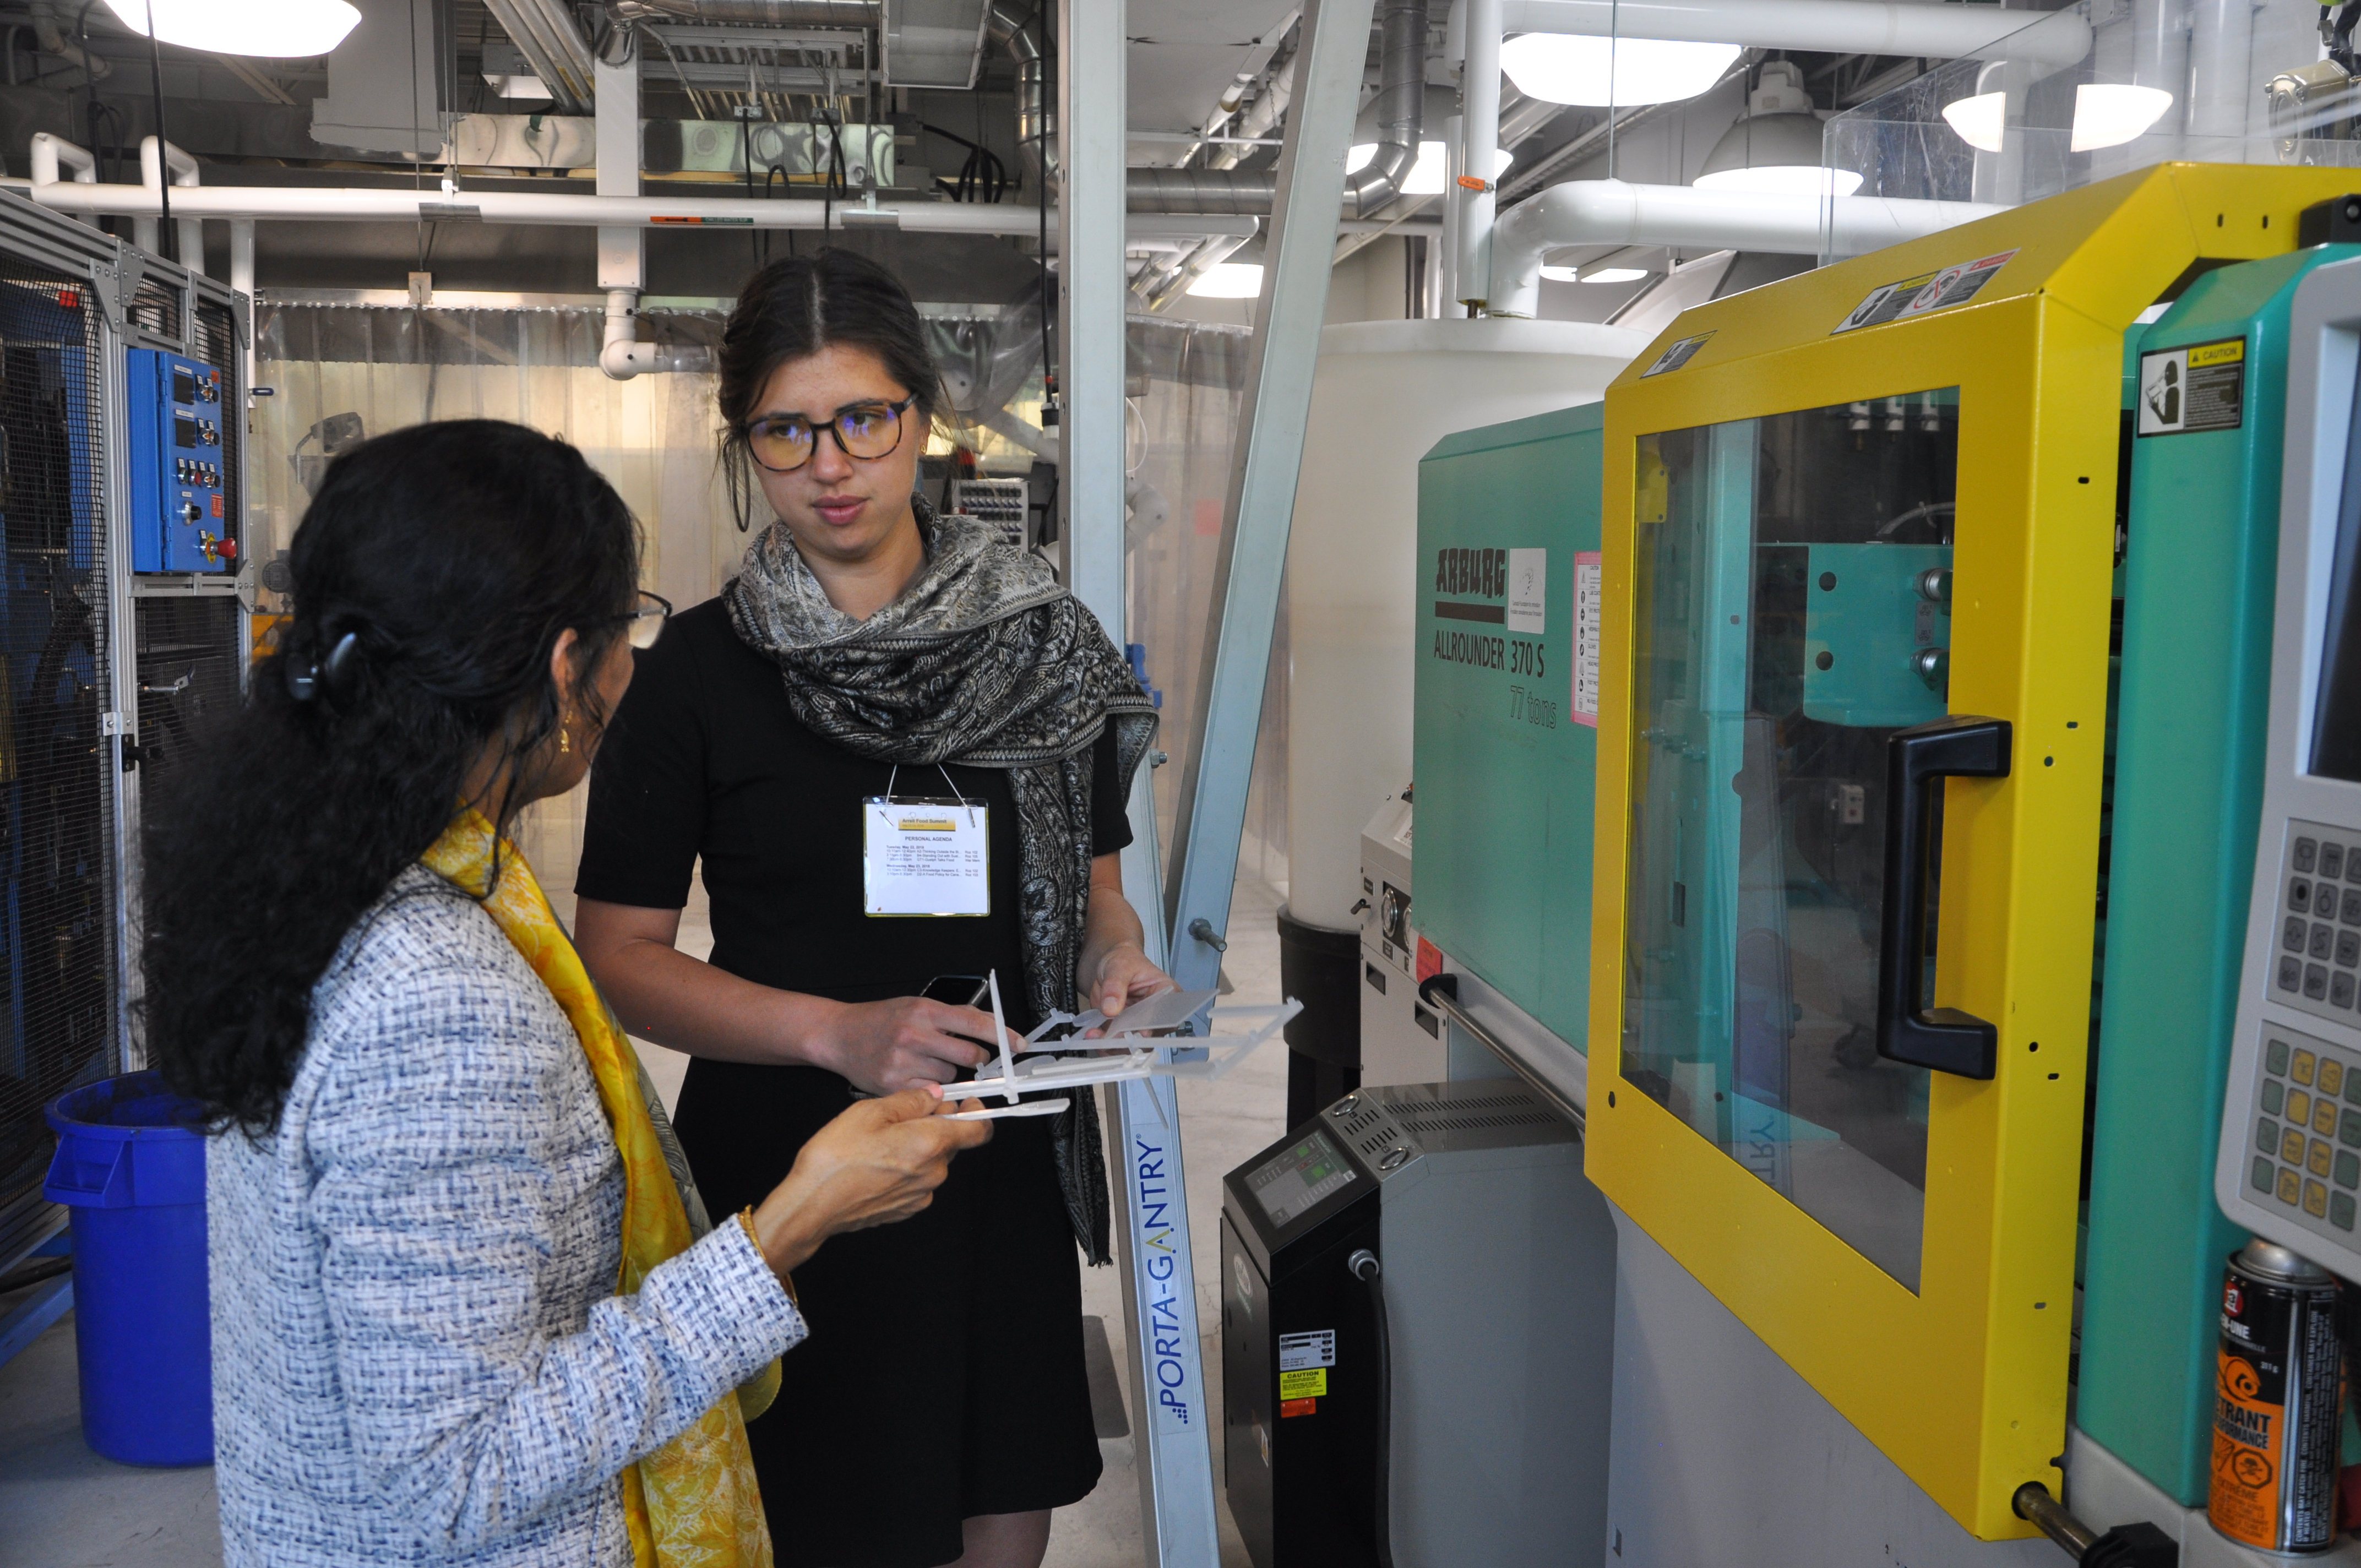 Professor Manju Misra guides Emma Chow through the BDDC's Processing Lab